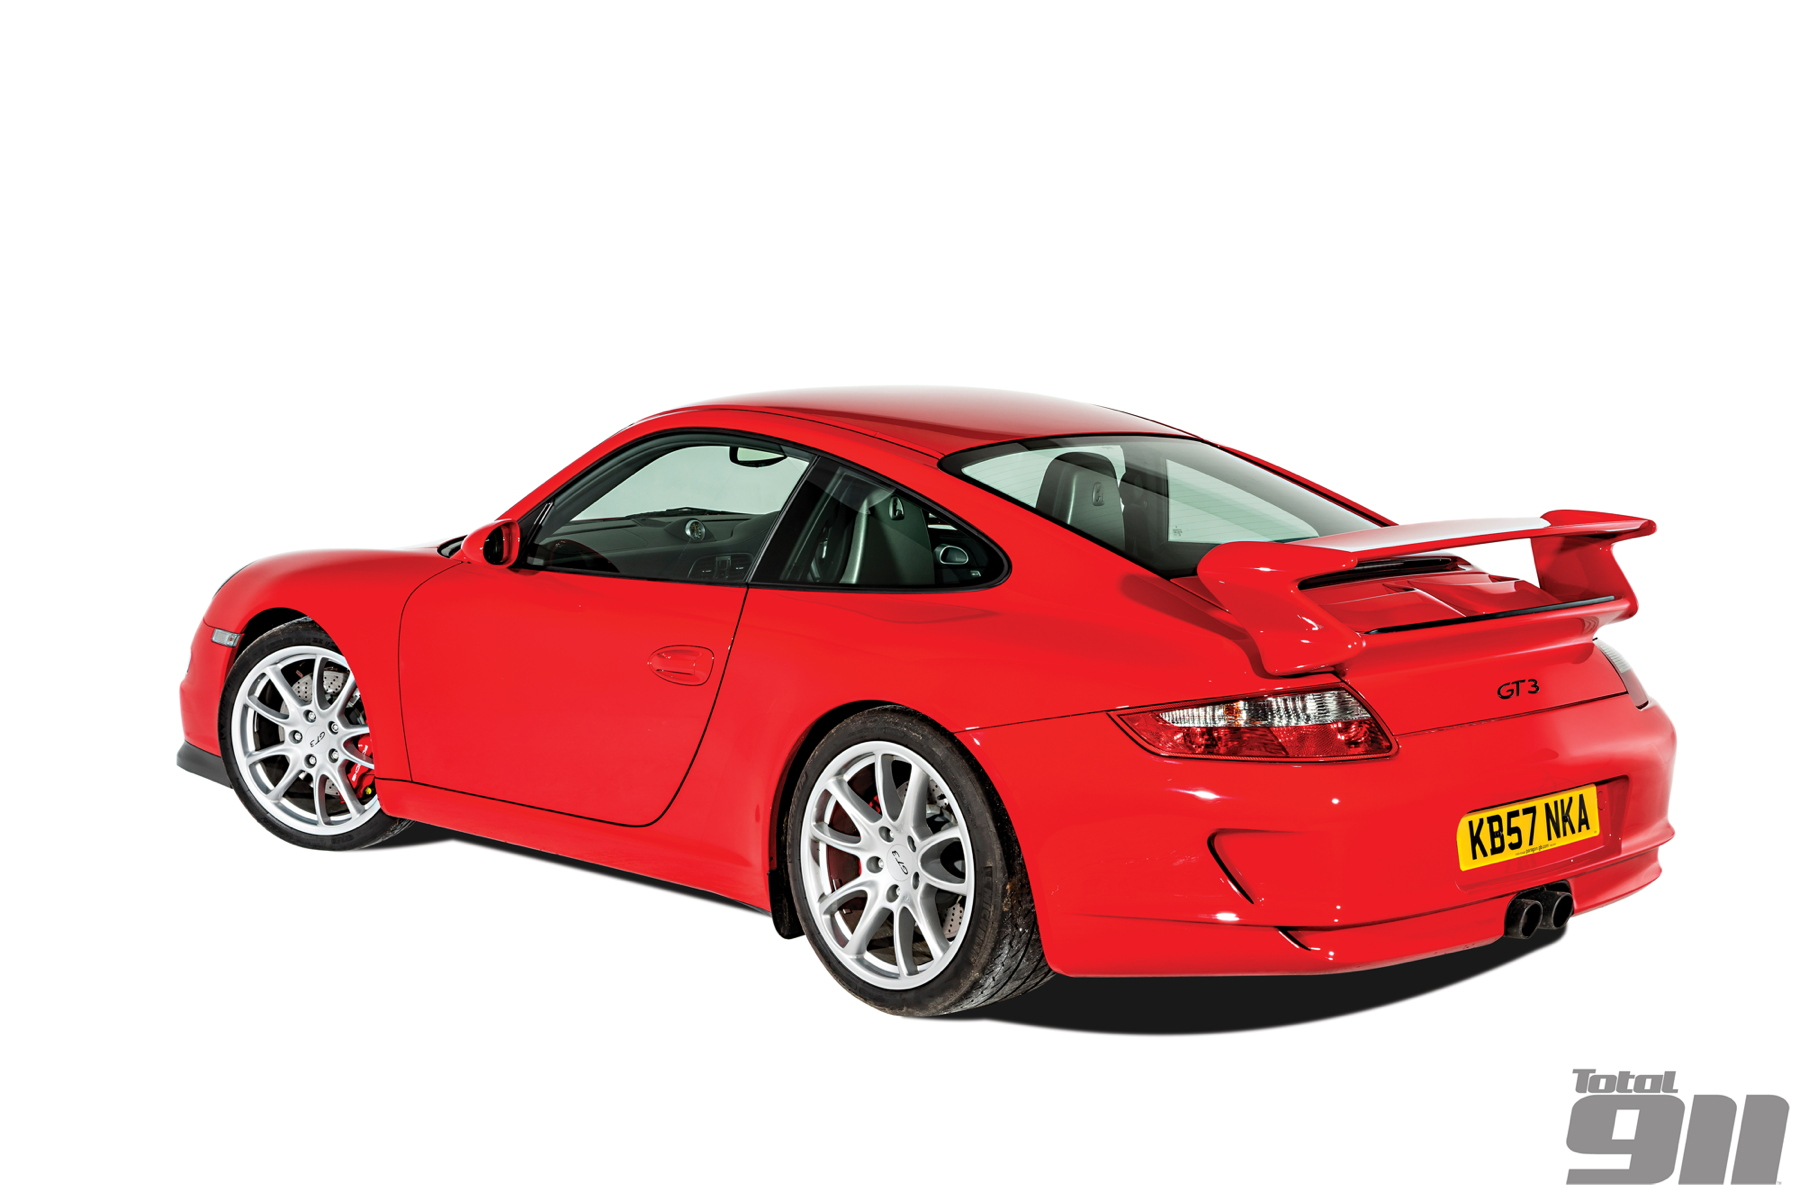 The 997 GT3 Gen1 is the star of our Ultimate guide.